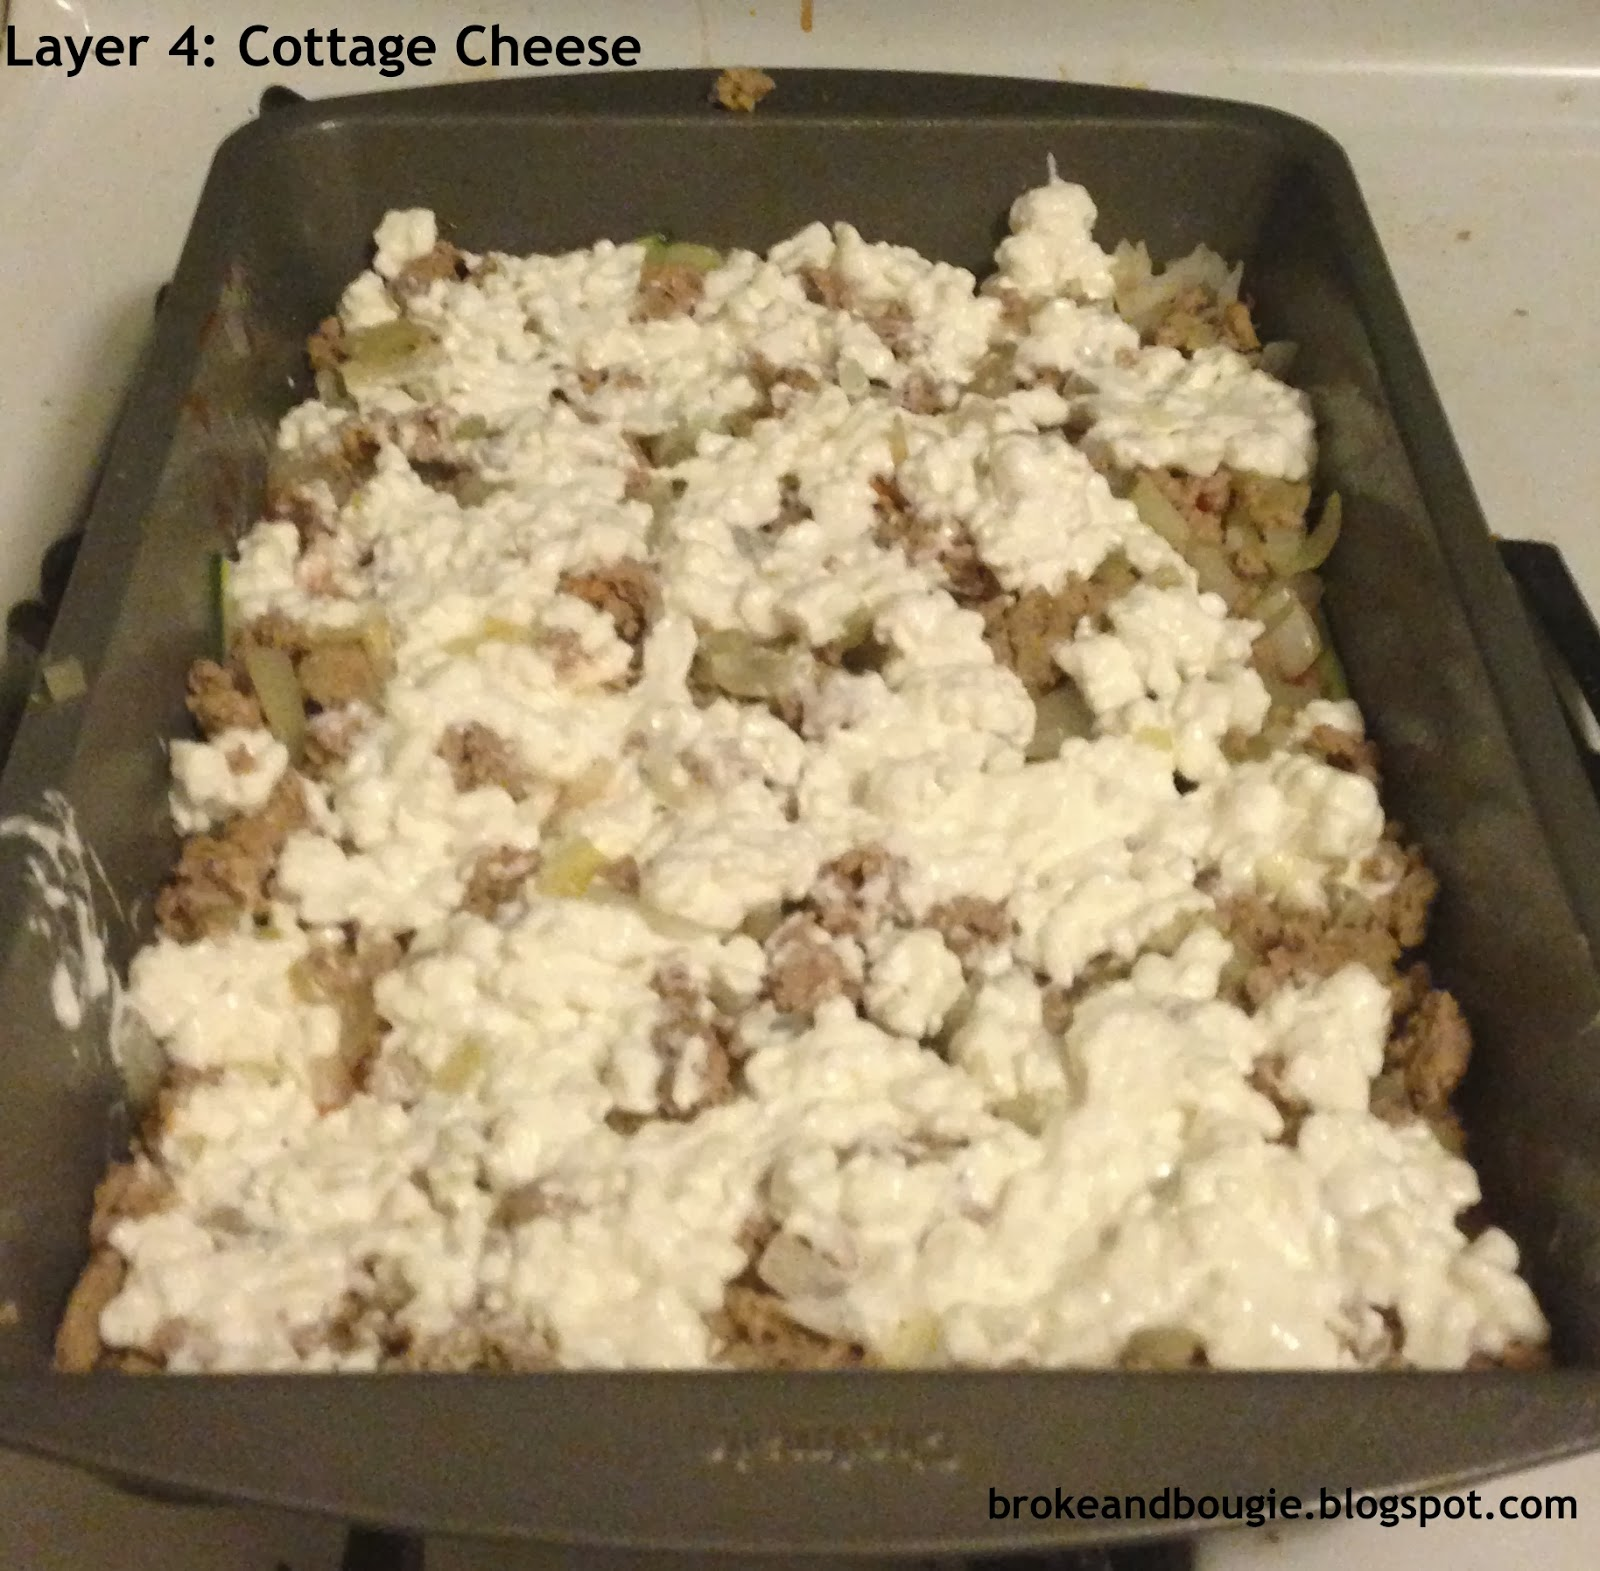 Broke And Bougie 7 Layer Clean Eating Lasagna Made With